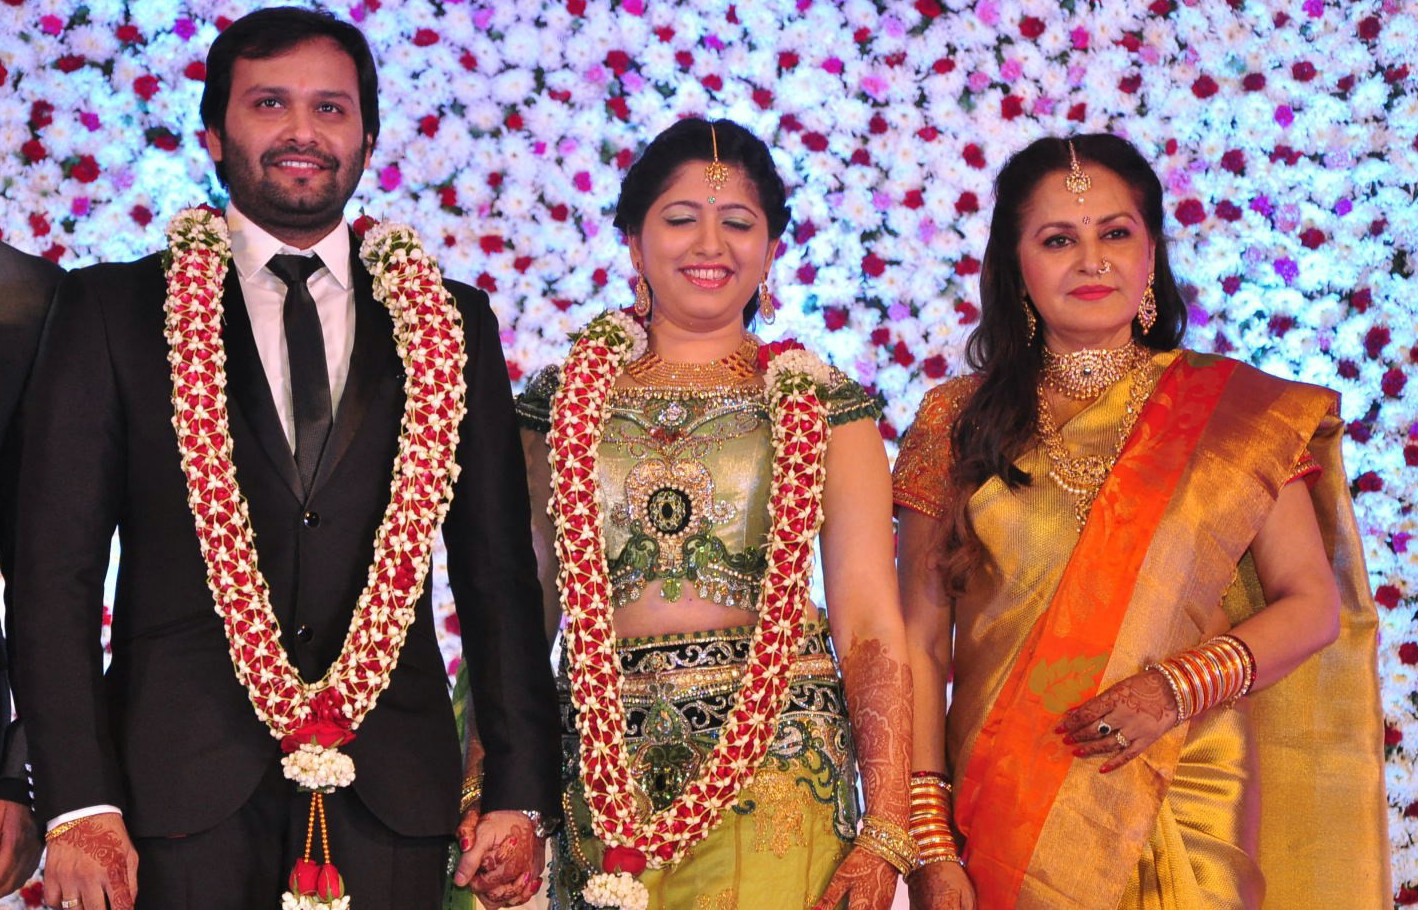 Siddharth and wife wedding